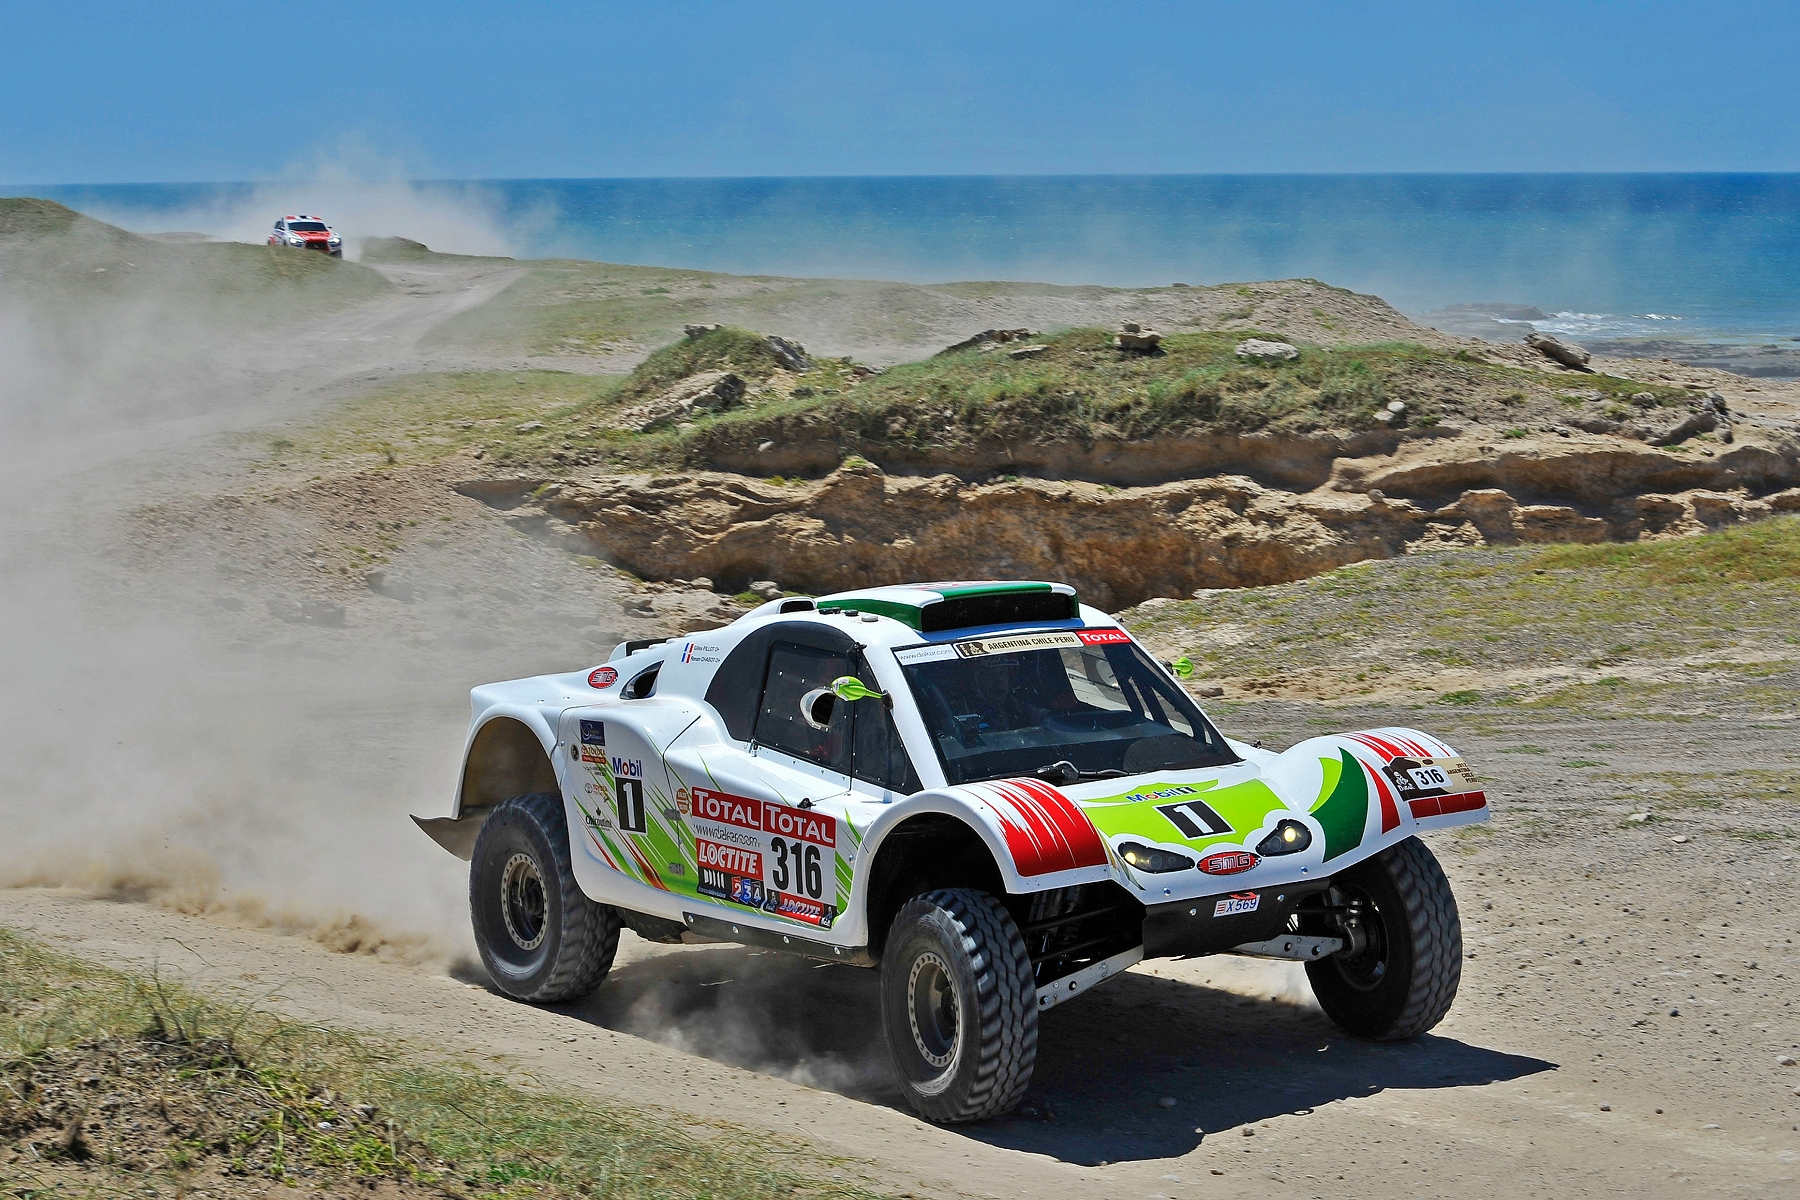 MOTORSPORT - DAKAR ARGENTINA CHILE  PERU 2012 - STAGE 1 START / DEPART - MAR DEL PLATA (ARG) TO SANTA ROSA DE LA PAMPA (ARG) - 01/01/2012 - PHOTO: DPPI